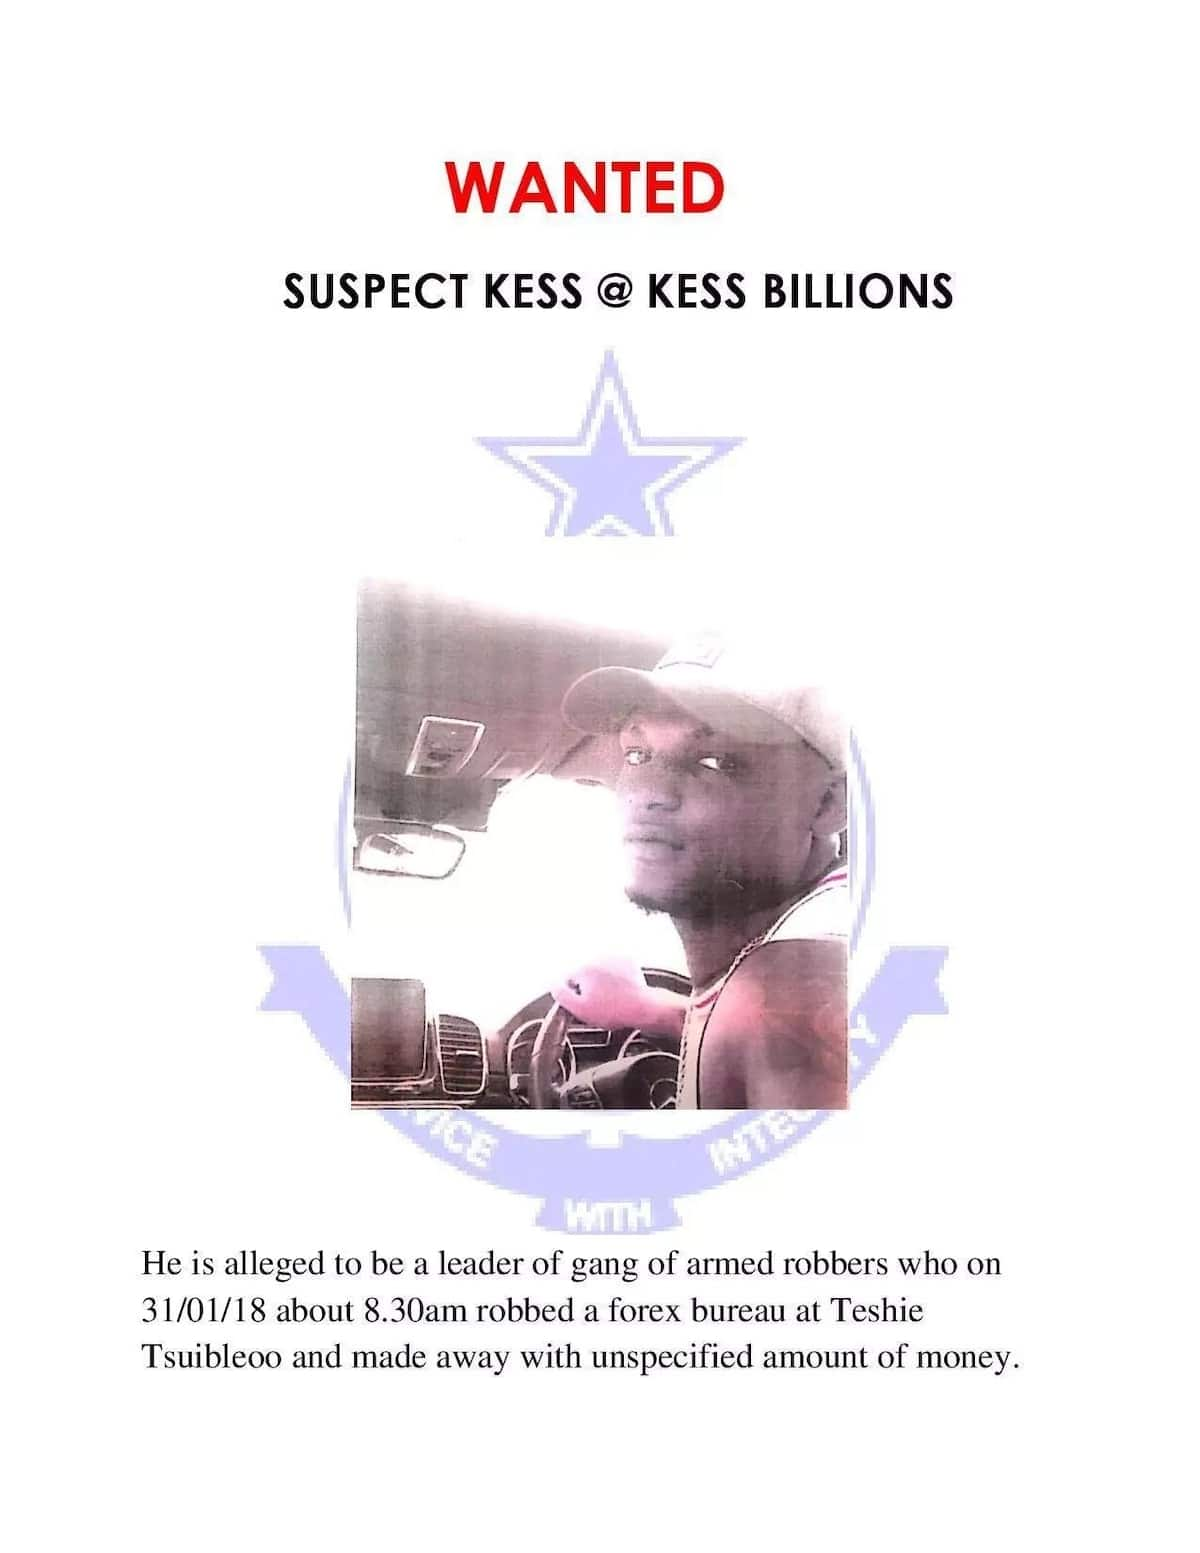 The notorious Nigerian forex bureau robber in Accra, Kess@Kess Billions